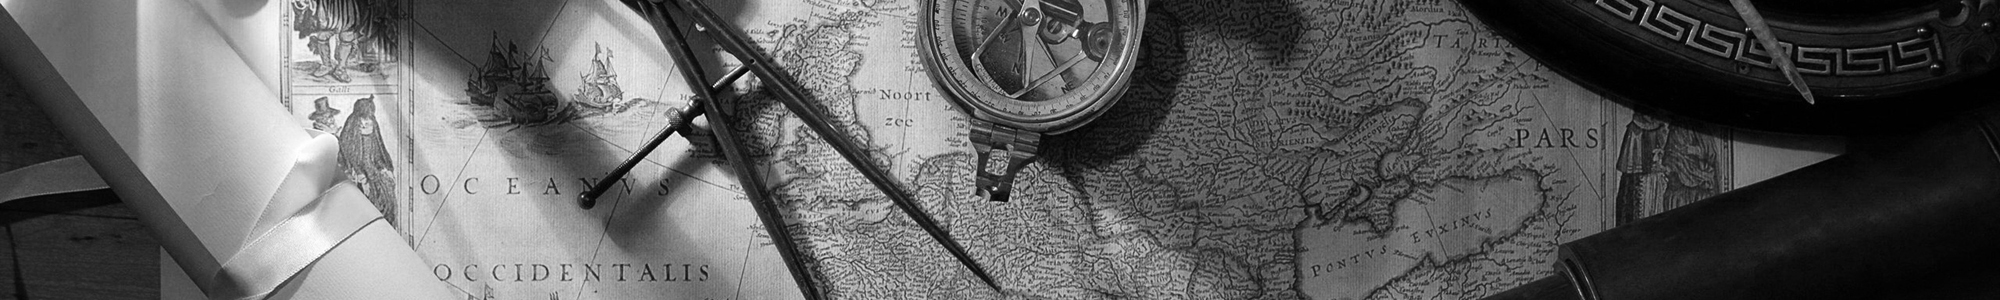 Nautical_navigation_tools_2560x960